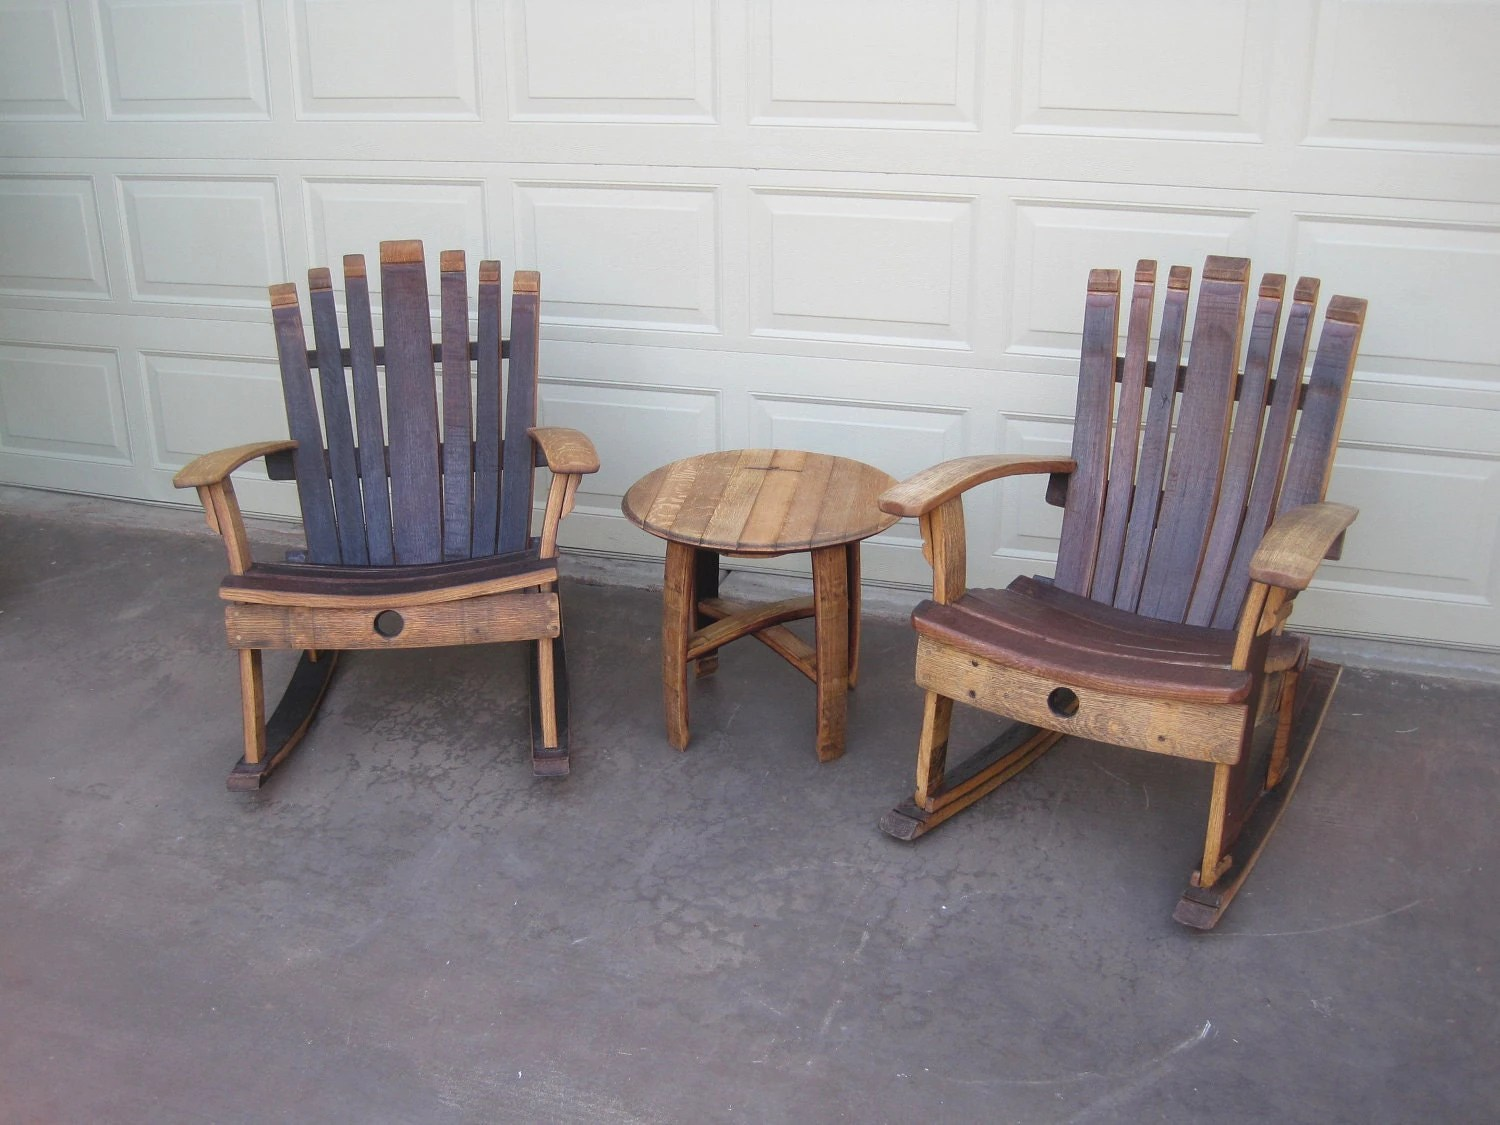 Barrell Chair Rocking Chair Wine Barrel Chair